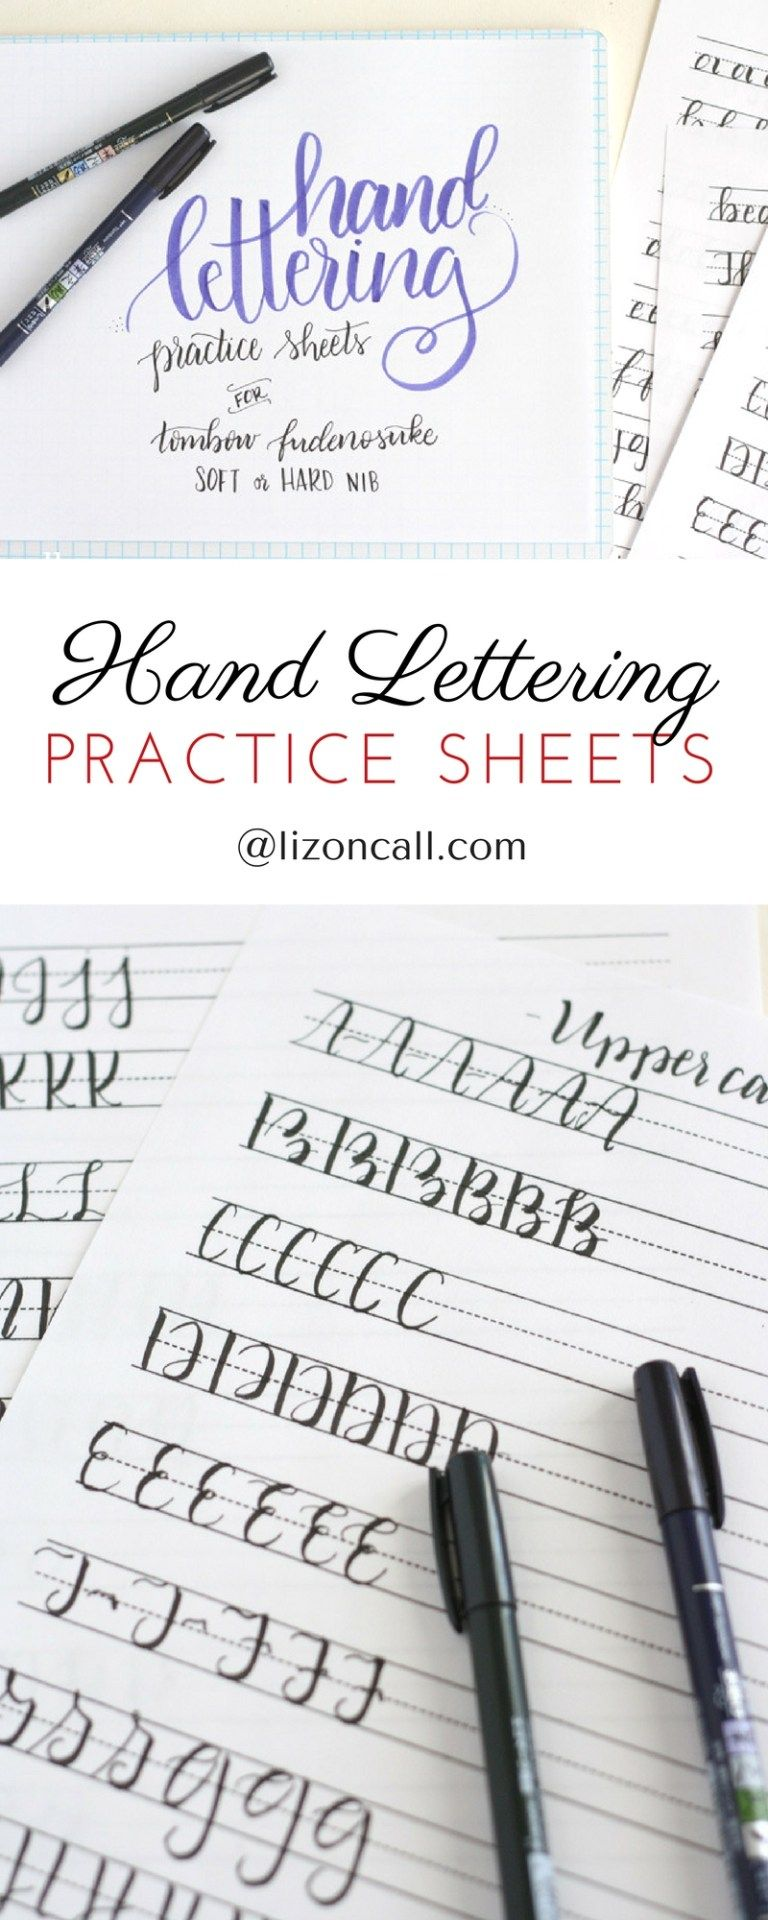 Free Printable Hand Lettering Practice Sheets is part of Brush lettering practice, Hand lettering practice sheets, Hand lettering, Lettering practice, Hand lettering practice, Hand lettering tutorial - These free printable hand lettering practice sheets are designed help you practice the strokes of each letter to build up that muscle memory